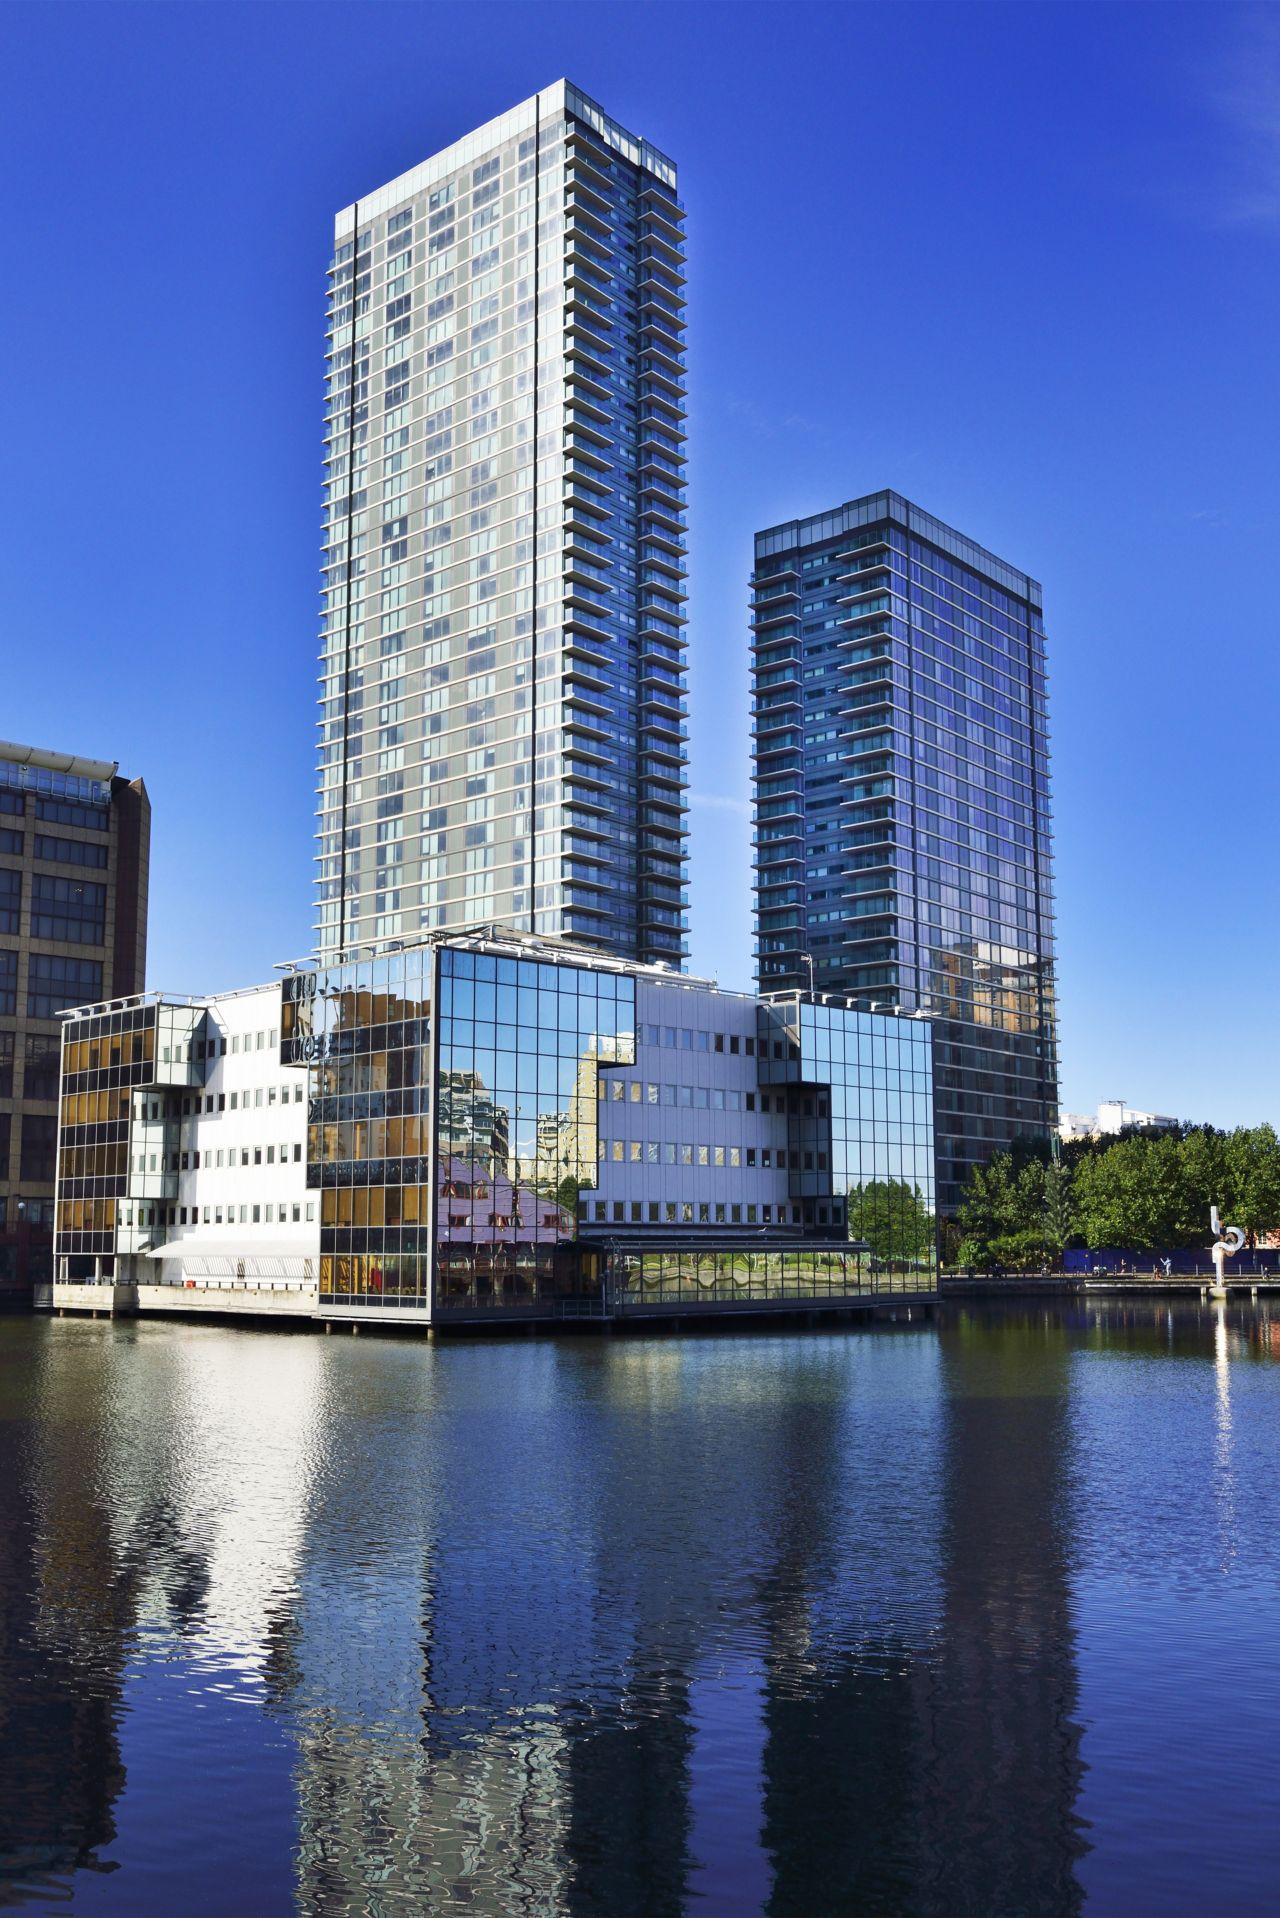 High rise buildings in front of a lake